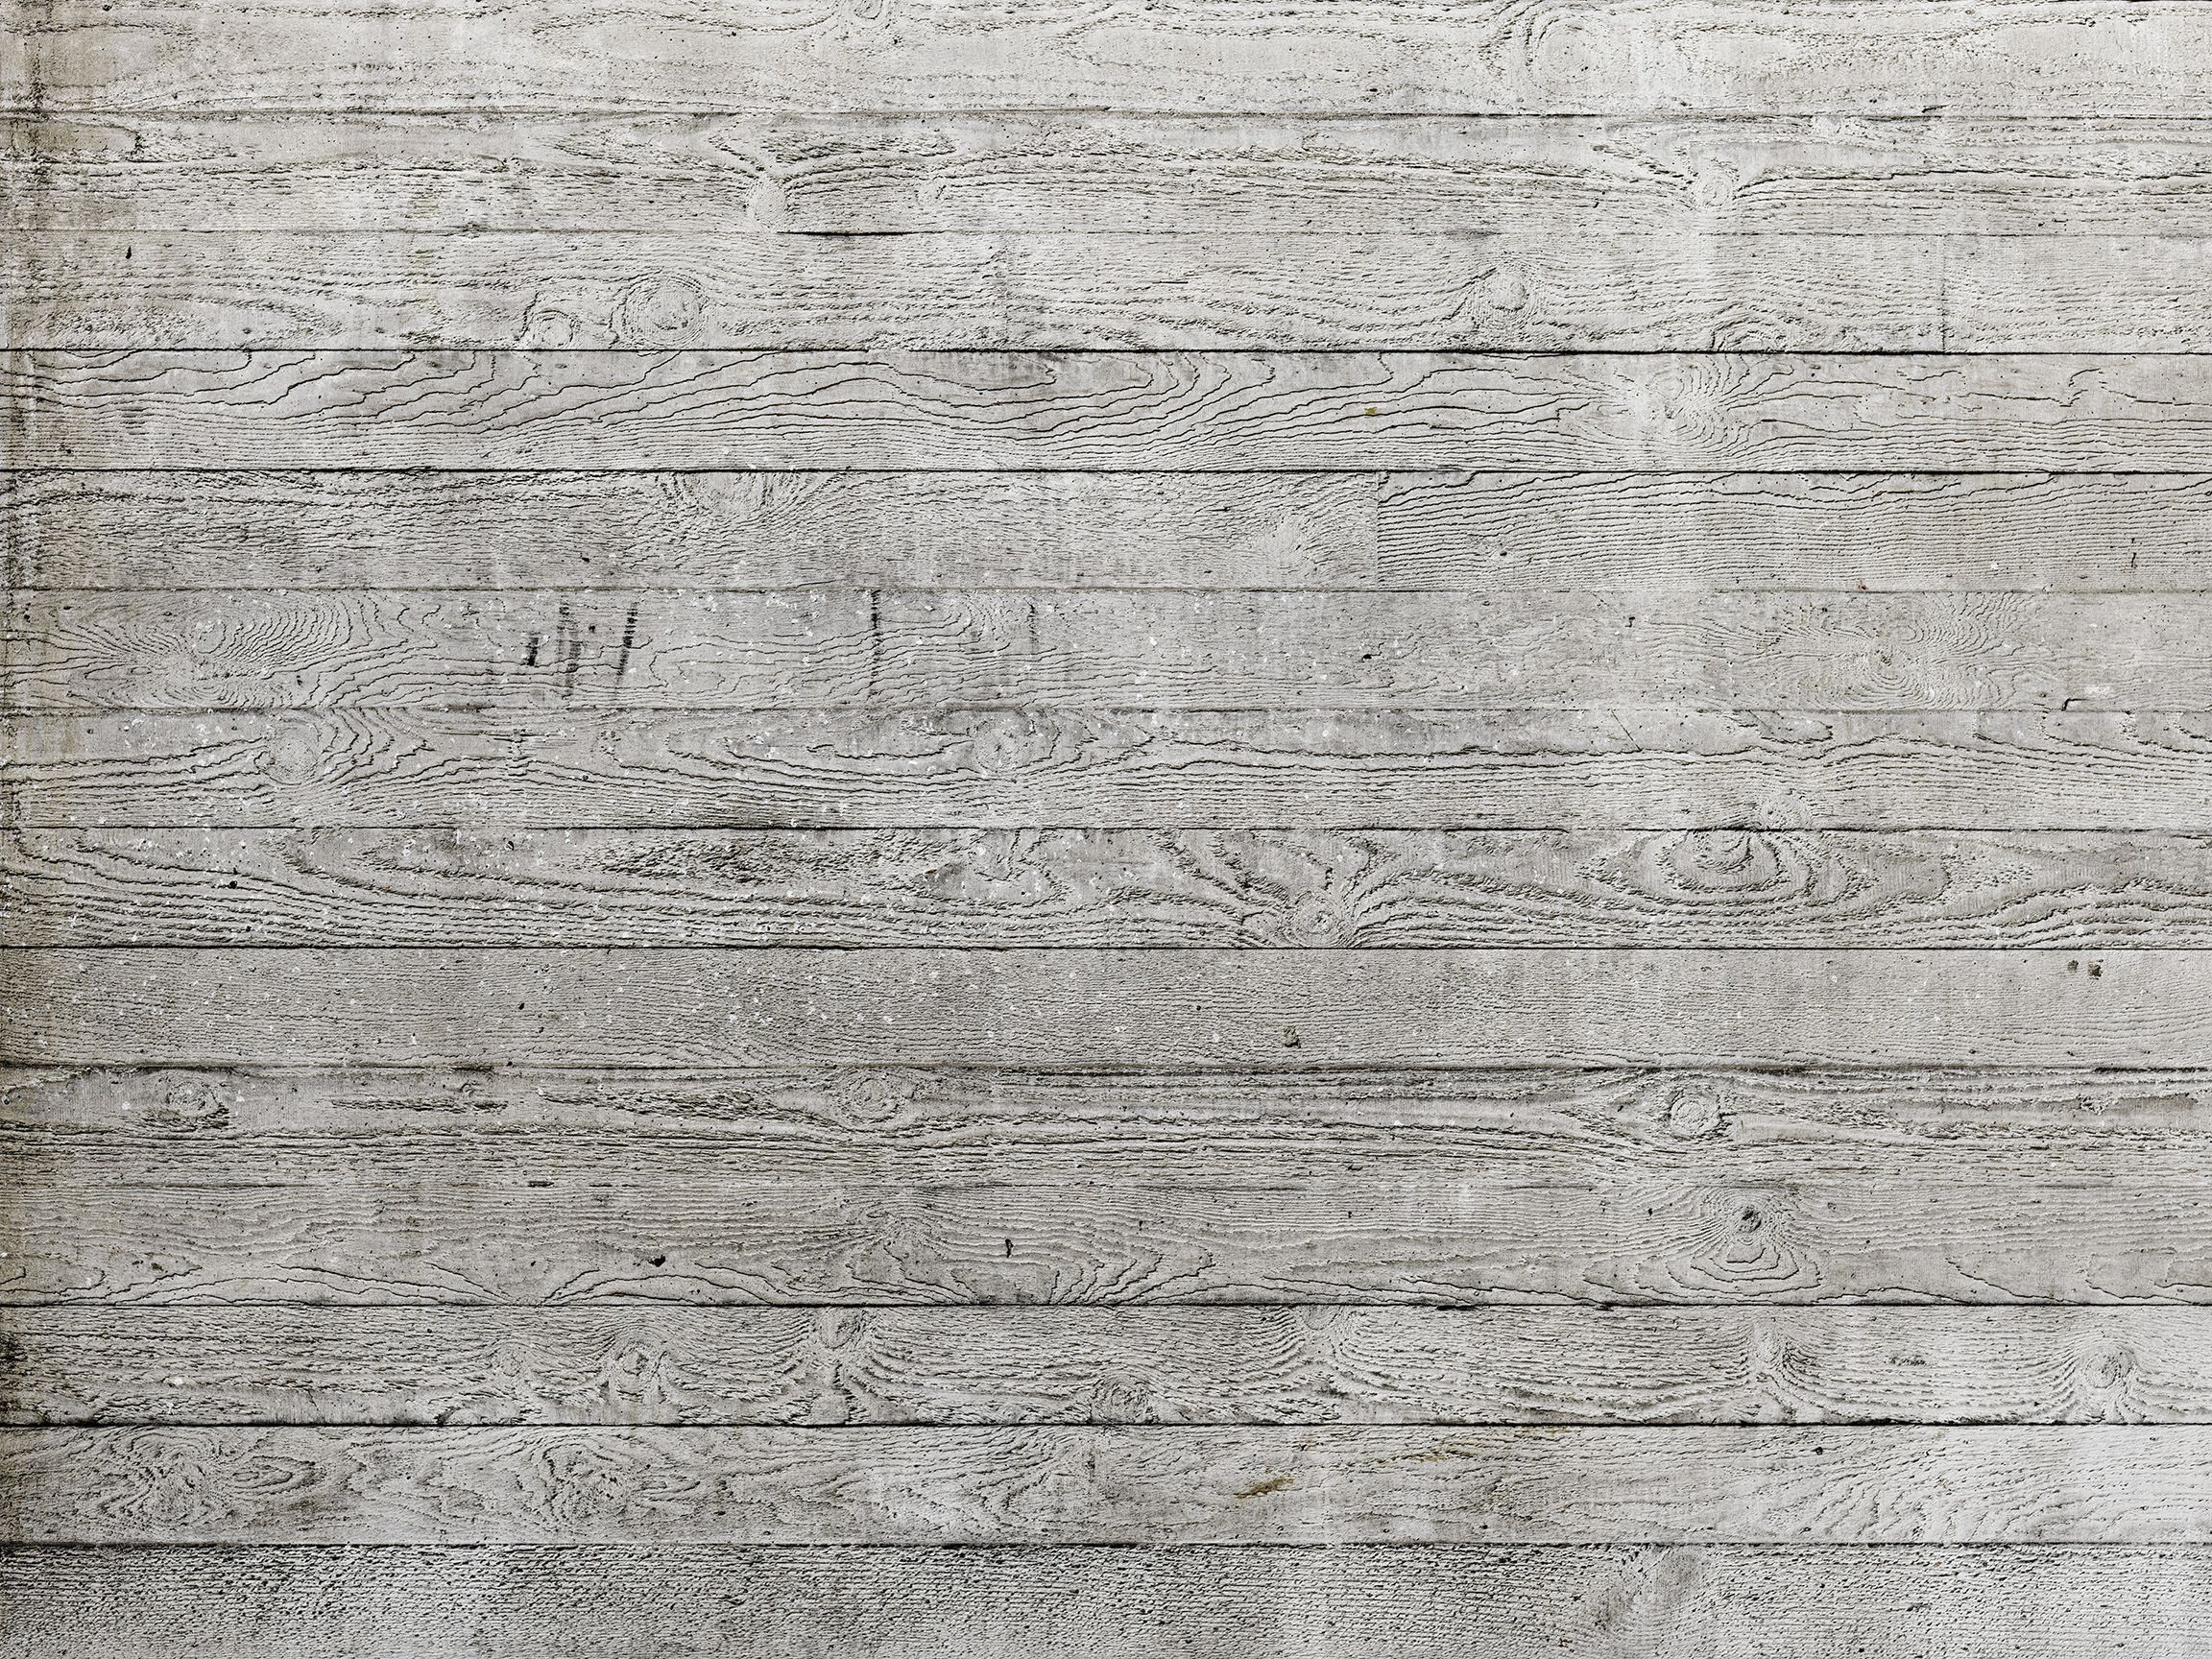 concrete wood ii mural wall murals concrete wood and